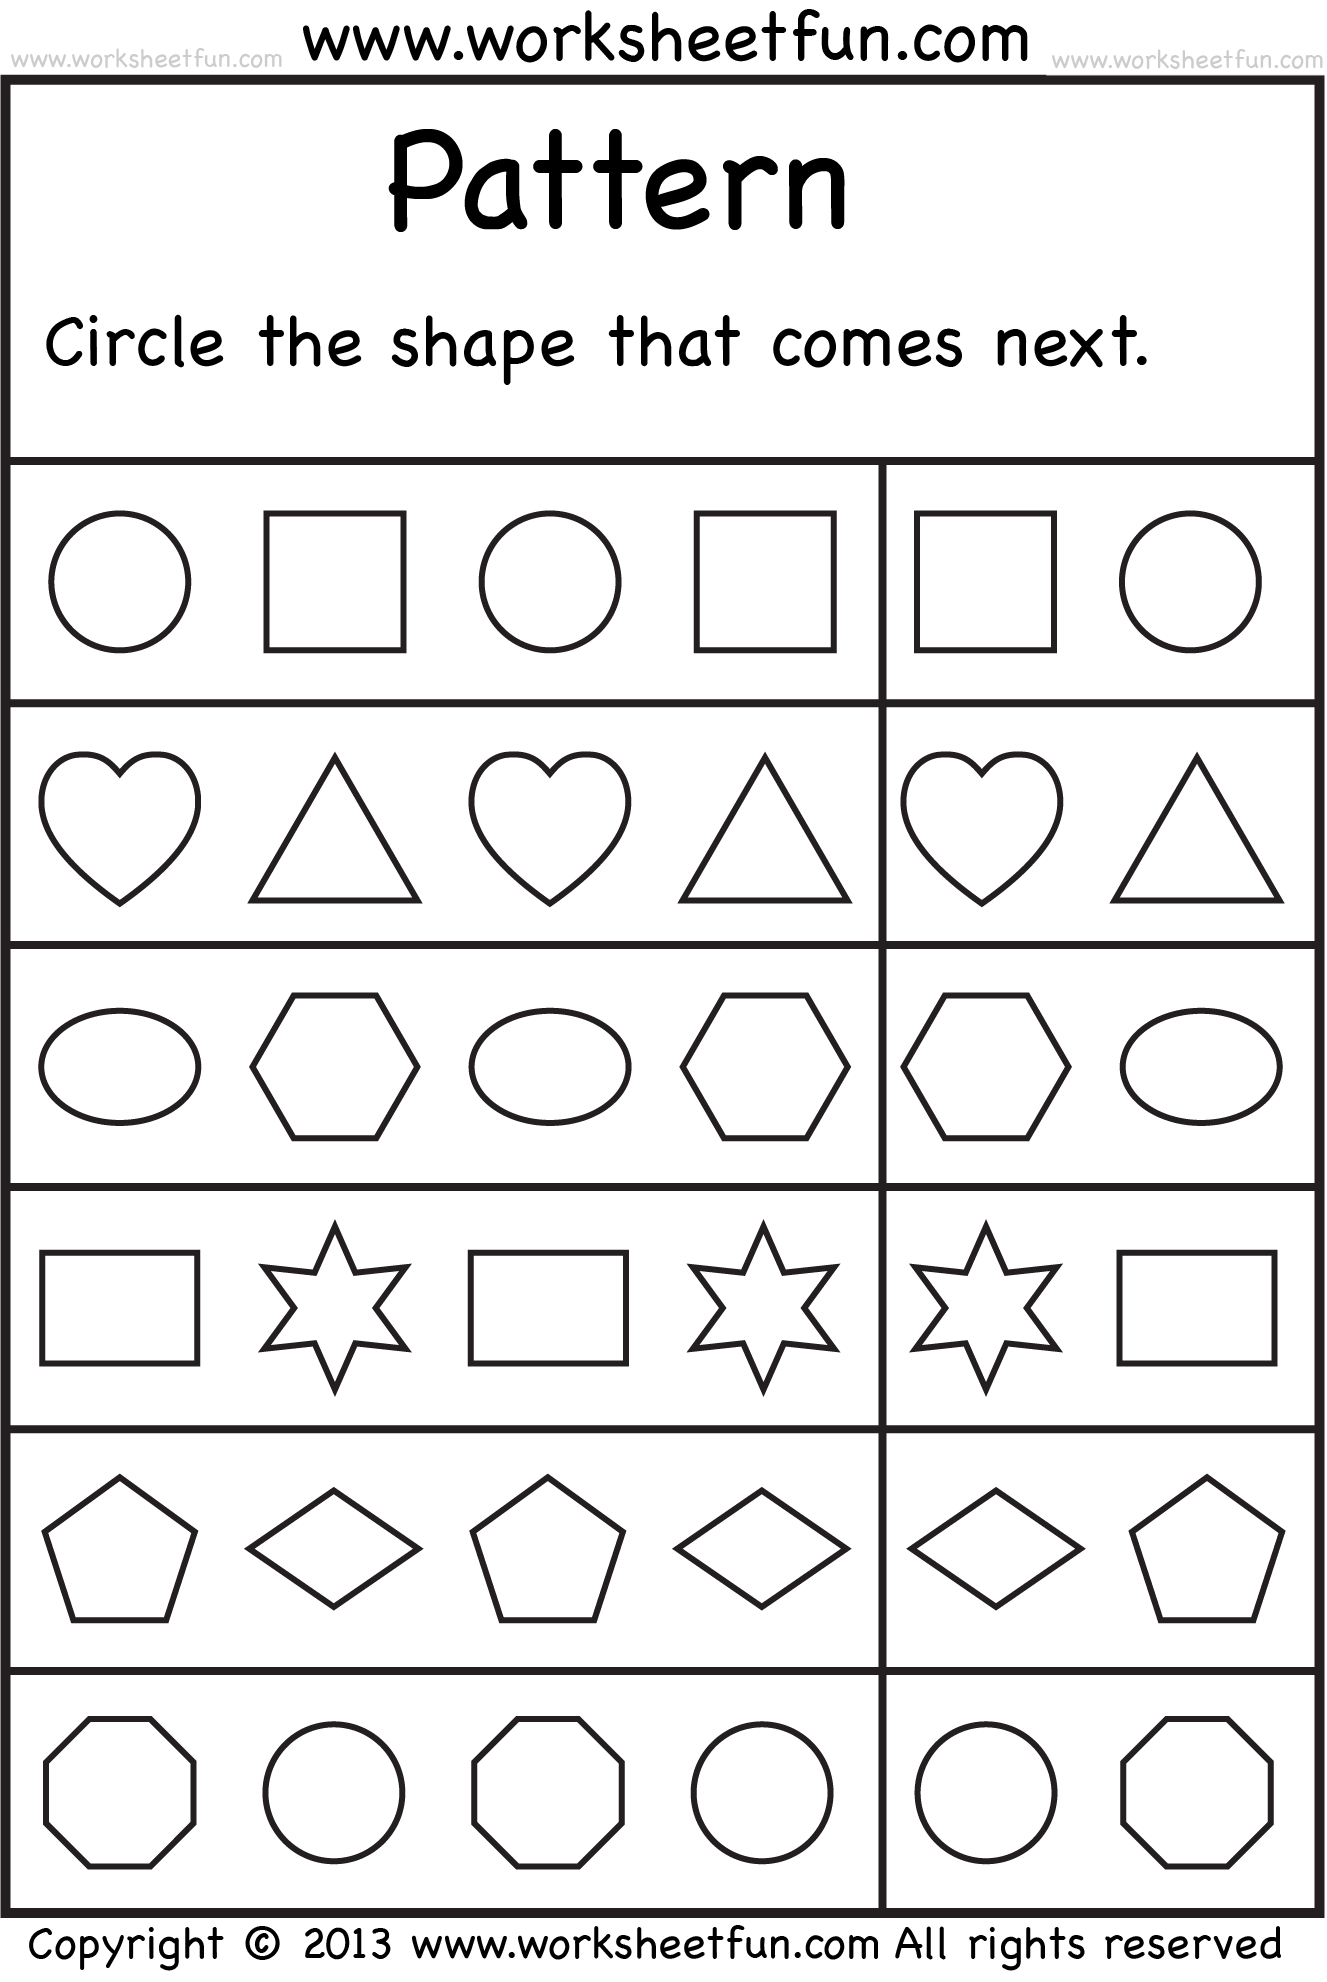 Weirdmailus  Pleasant  Images About School Worksheets On Pinterest  Number Words  With Hot  Images About School Worksheets On Pinterest  Number Words Alphabet Worksheets And Free Printable Kindergarten Worksheets With Enchanting Worksheets For Algebra  Also Worksheet Negative Exponents In Addition Year  Maths Worksheets Printable And Worksheets On Homographs As Well As Multiplication Times Table Worksheet Additionally Nouns And Verbs Worksheets Nd Grade From Pinterestcom With Weirdmailus  Hot  Images About School Worksheets On Pinterest  Number Words  With Enchanting  Images About School Worksheets On Pinterest  Number Words Alphabet Worksheets And Free Printable Kindergarten Worksheets And Pleasant Worksheets For Algebra  Also Worksheet Negative Exponents In Addition Year  Maths Worksheets Printable From Pinterestcom